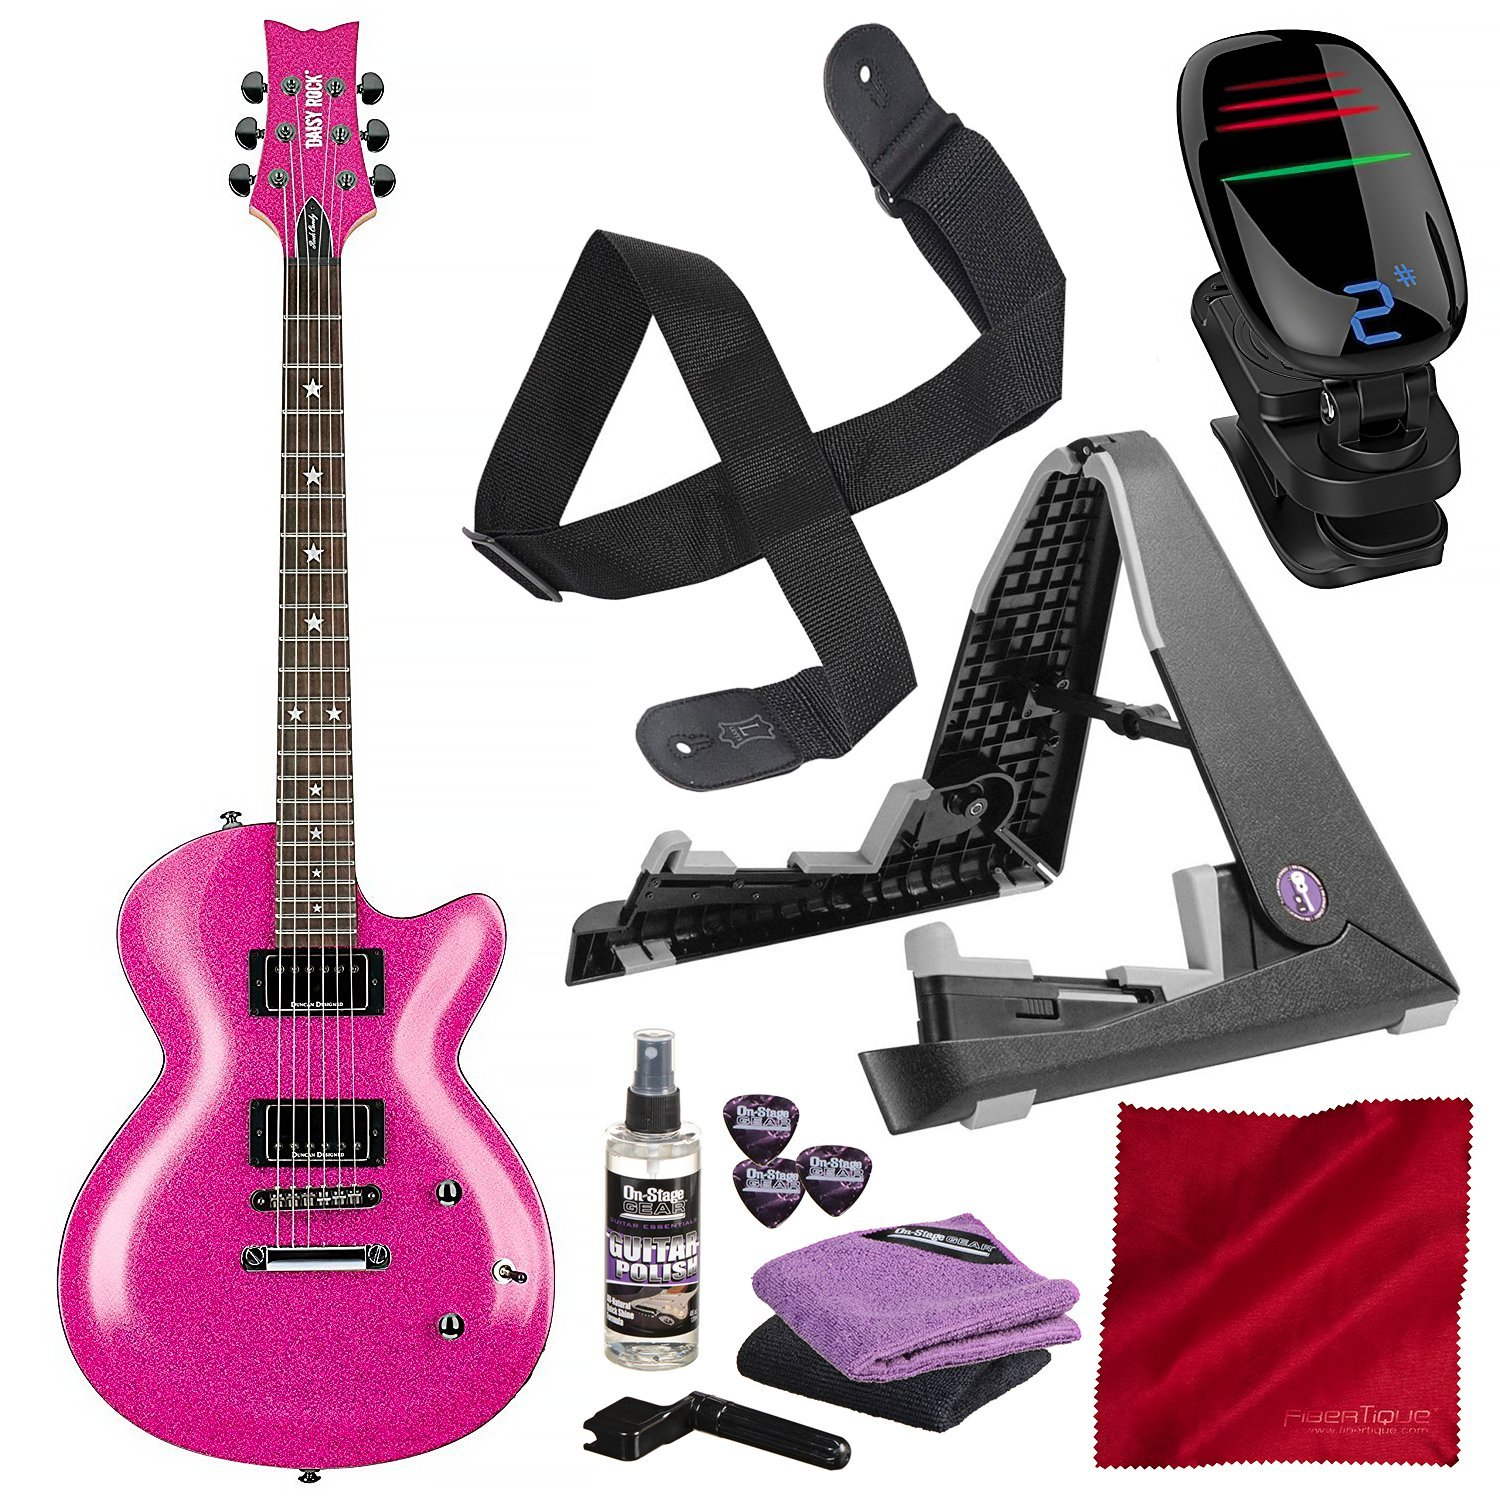 Cheap Daisy Rock 6 String Solid-Body Electric Guitar (DR6751-U) with 3D Clip-On Chromatic Tuner Guitar Stand and Deluxe Bundle Black Friday & Cyber Monday 2019